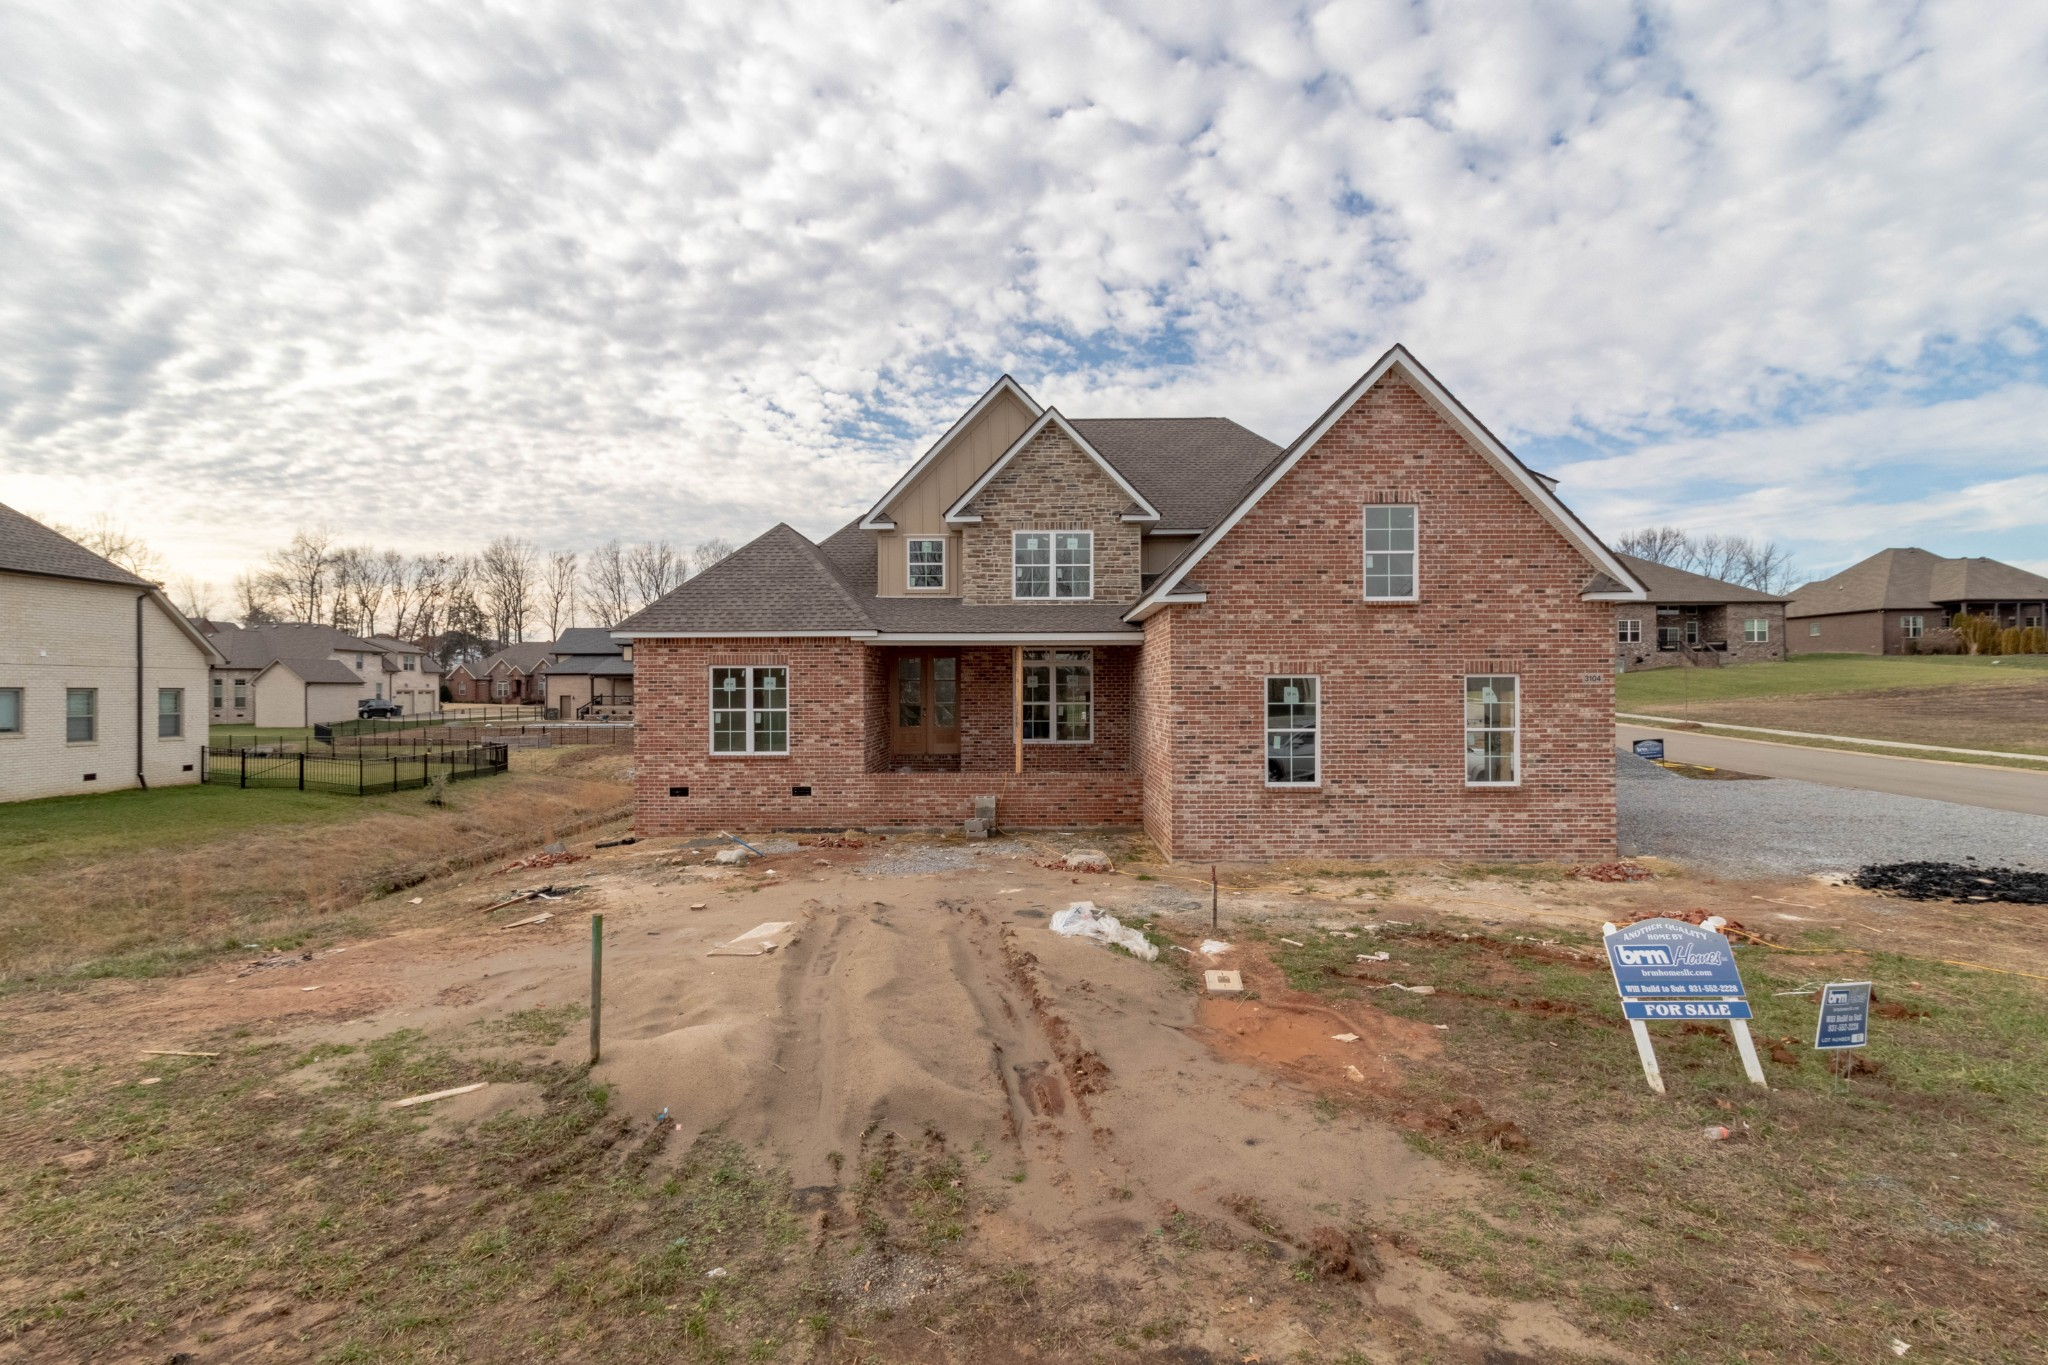 3104 Bowles Dr, Clarksville, TN 37043 - Clarksville, TN real estate listing